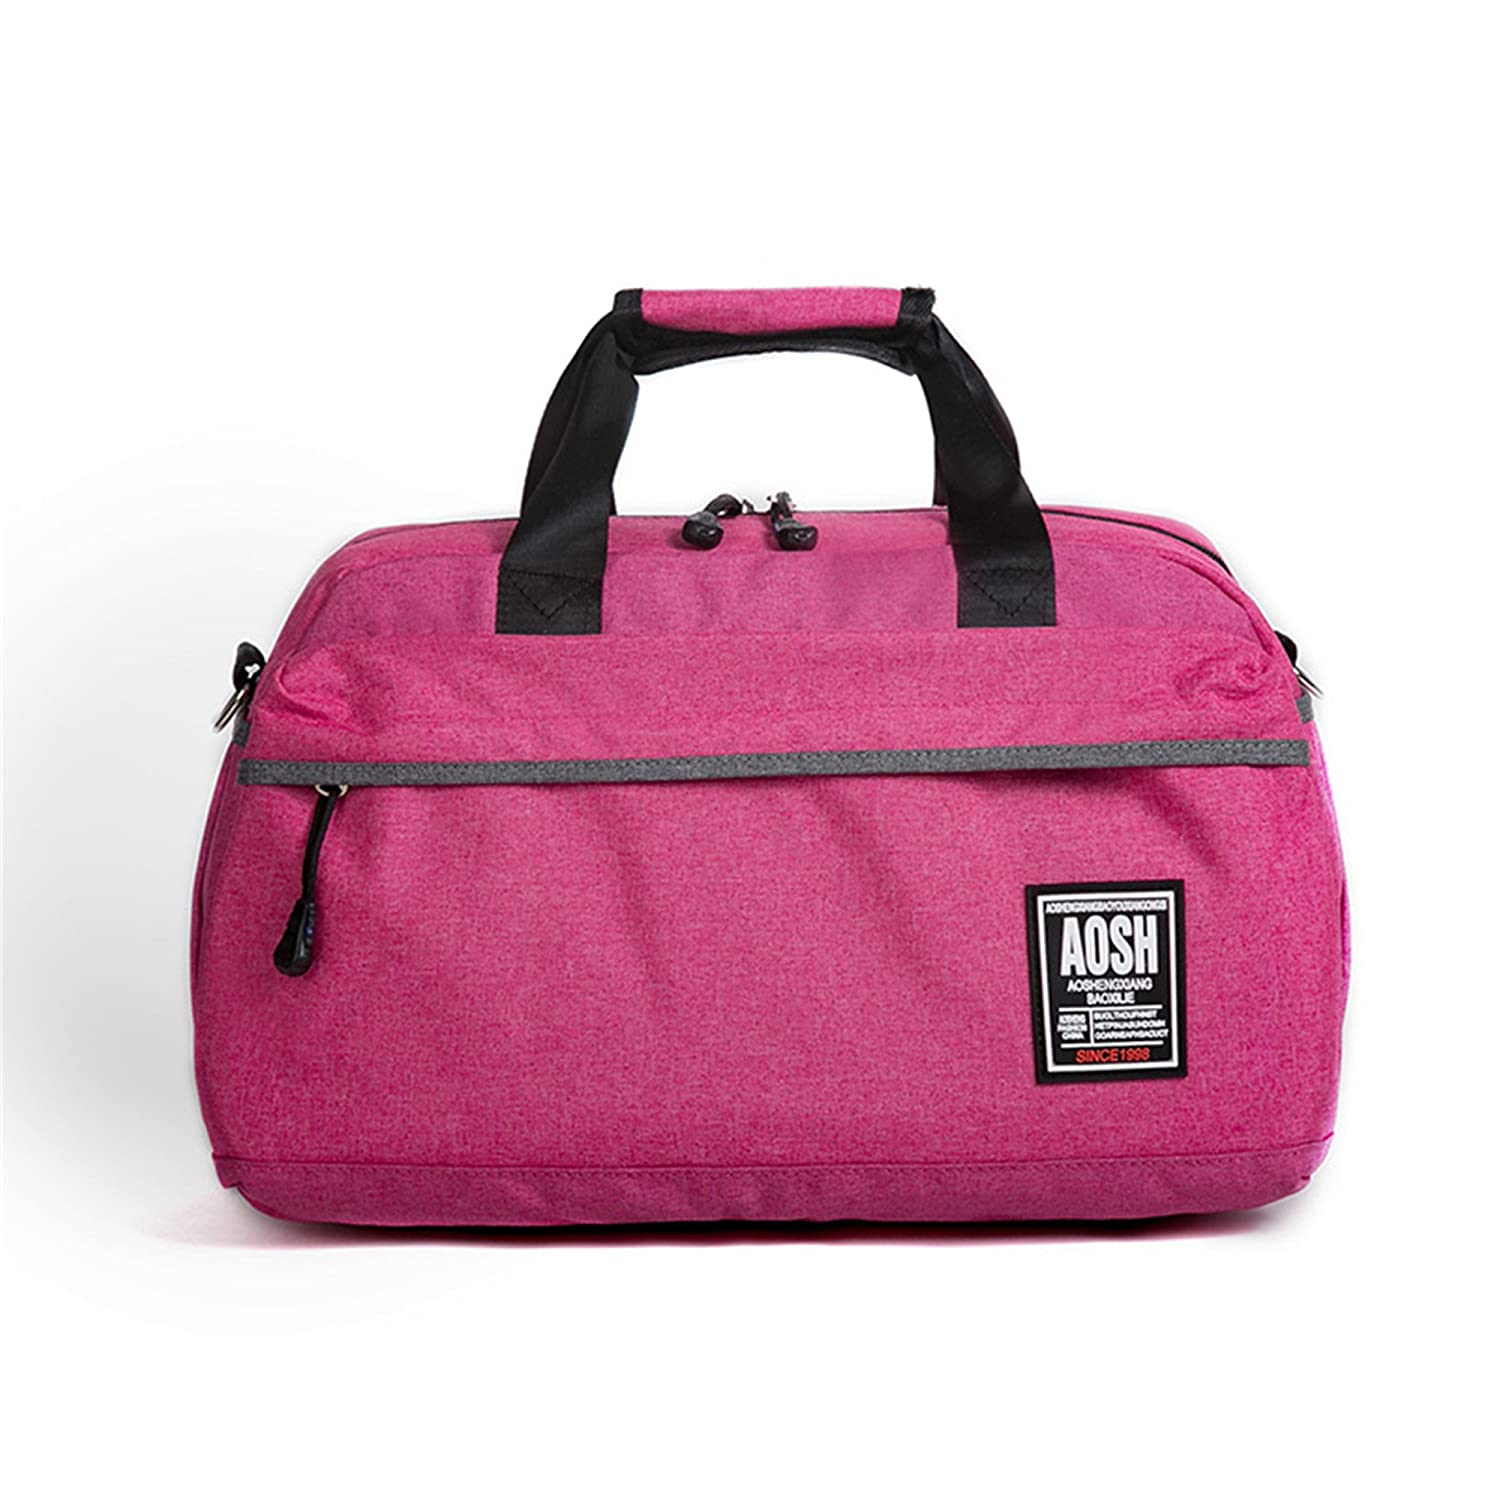 Flax Cotton Gym Bag For Men And Women Fitness Training Sports Handbag Solid Color